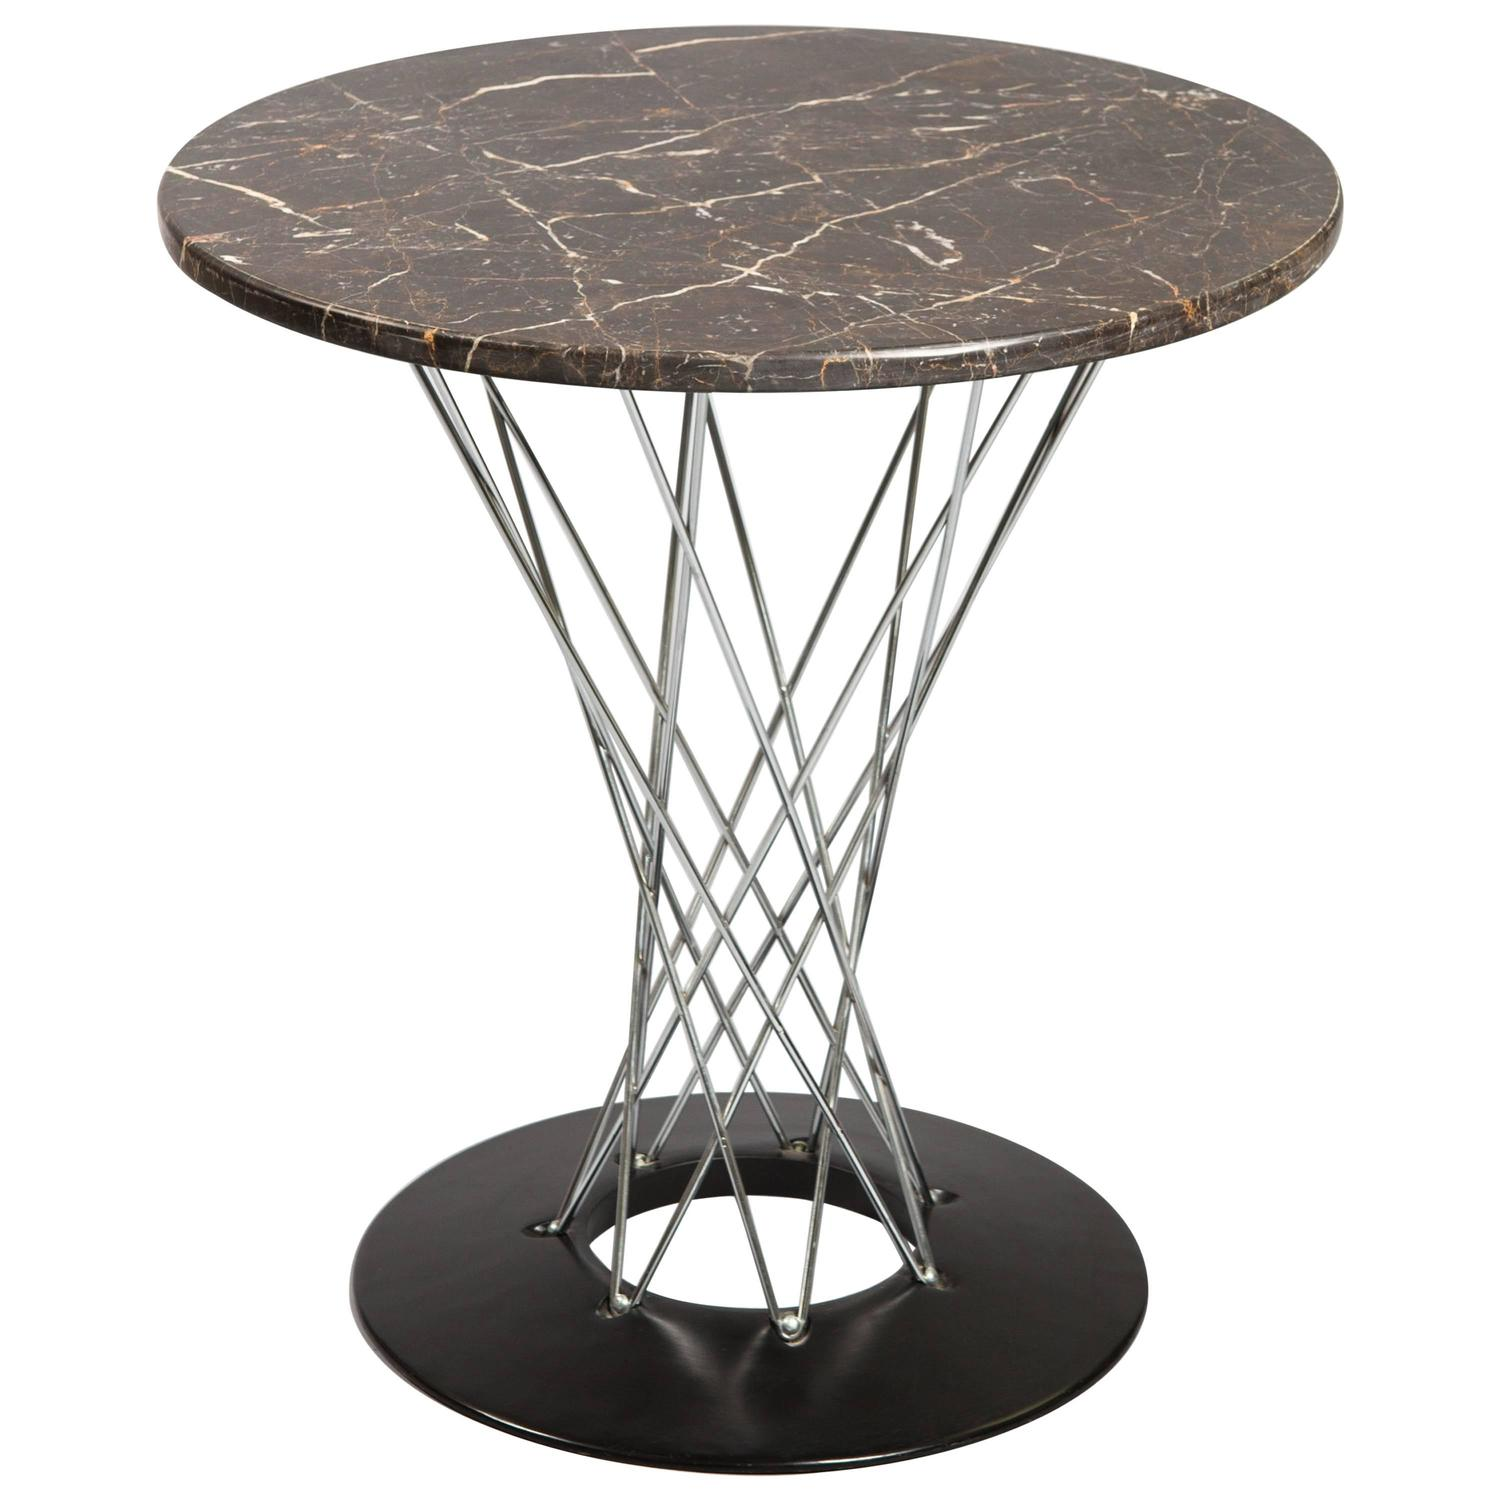 Isamu Noguchi Cyclone Table with Custom Black Marble Top For Sale